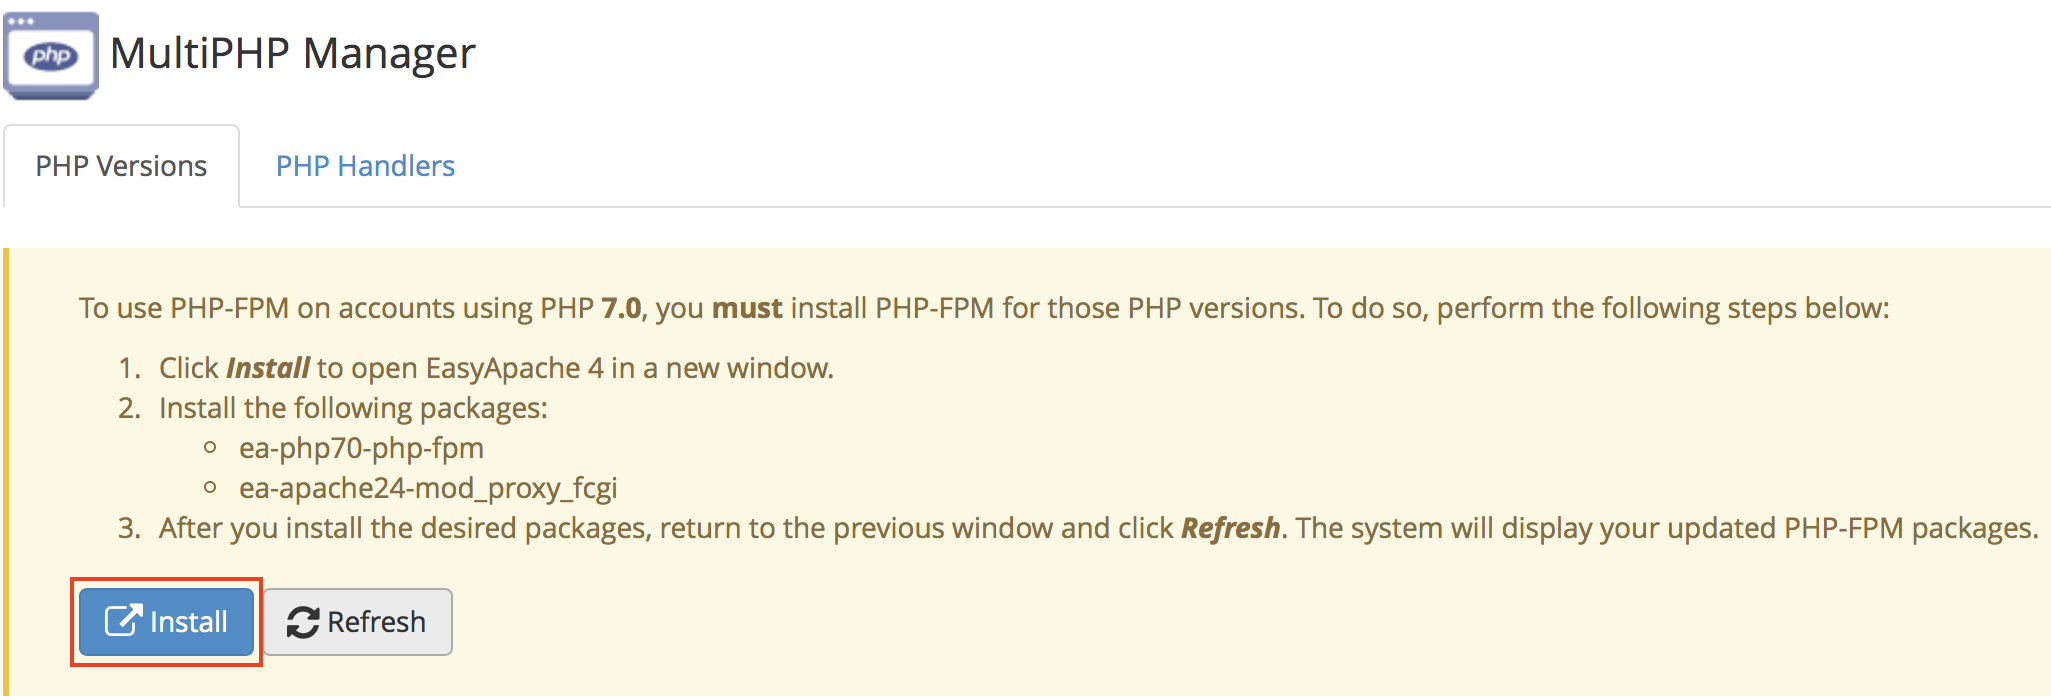 WHM MultiPHP Manager PHP-FPM Install button highlighted.